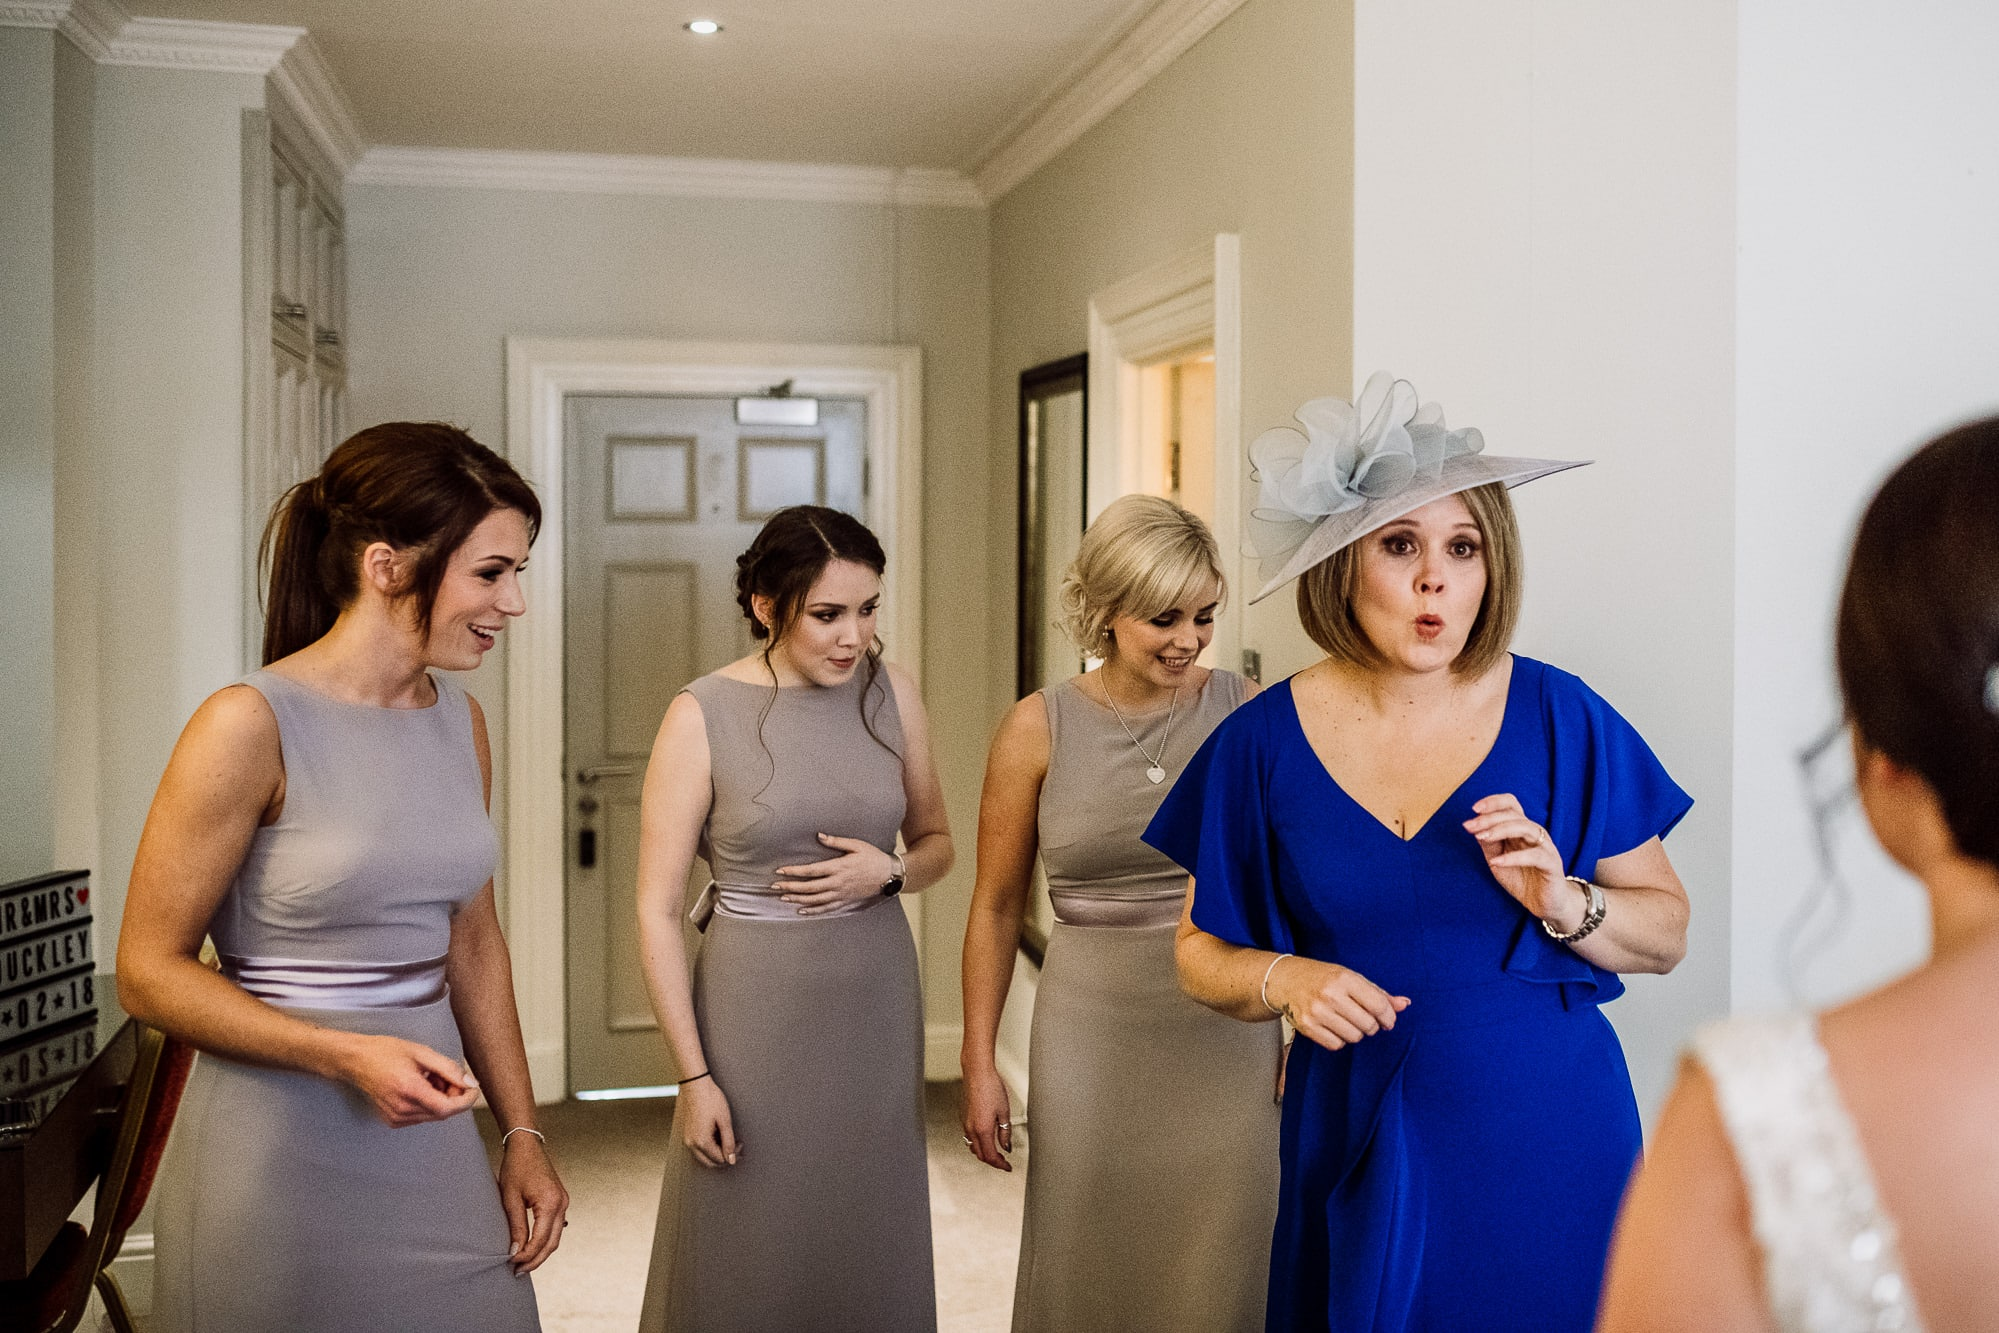 First look for the bridesmaids and the mother of the bride